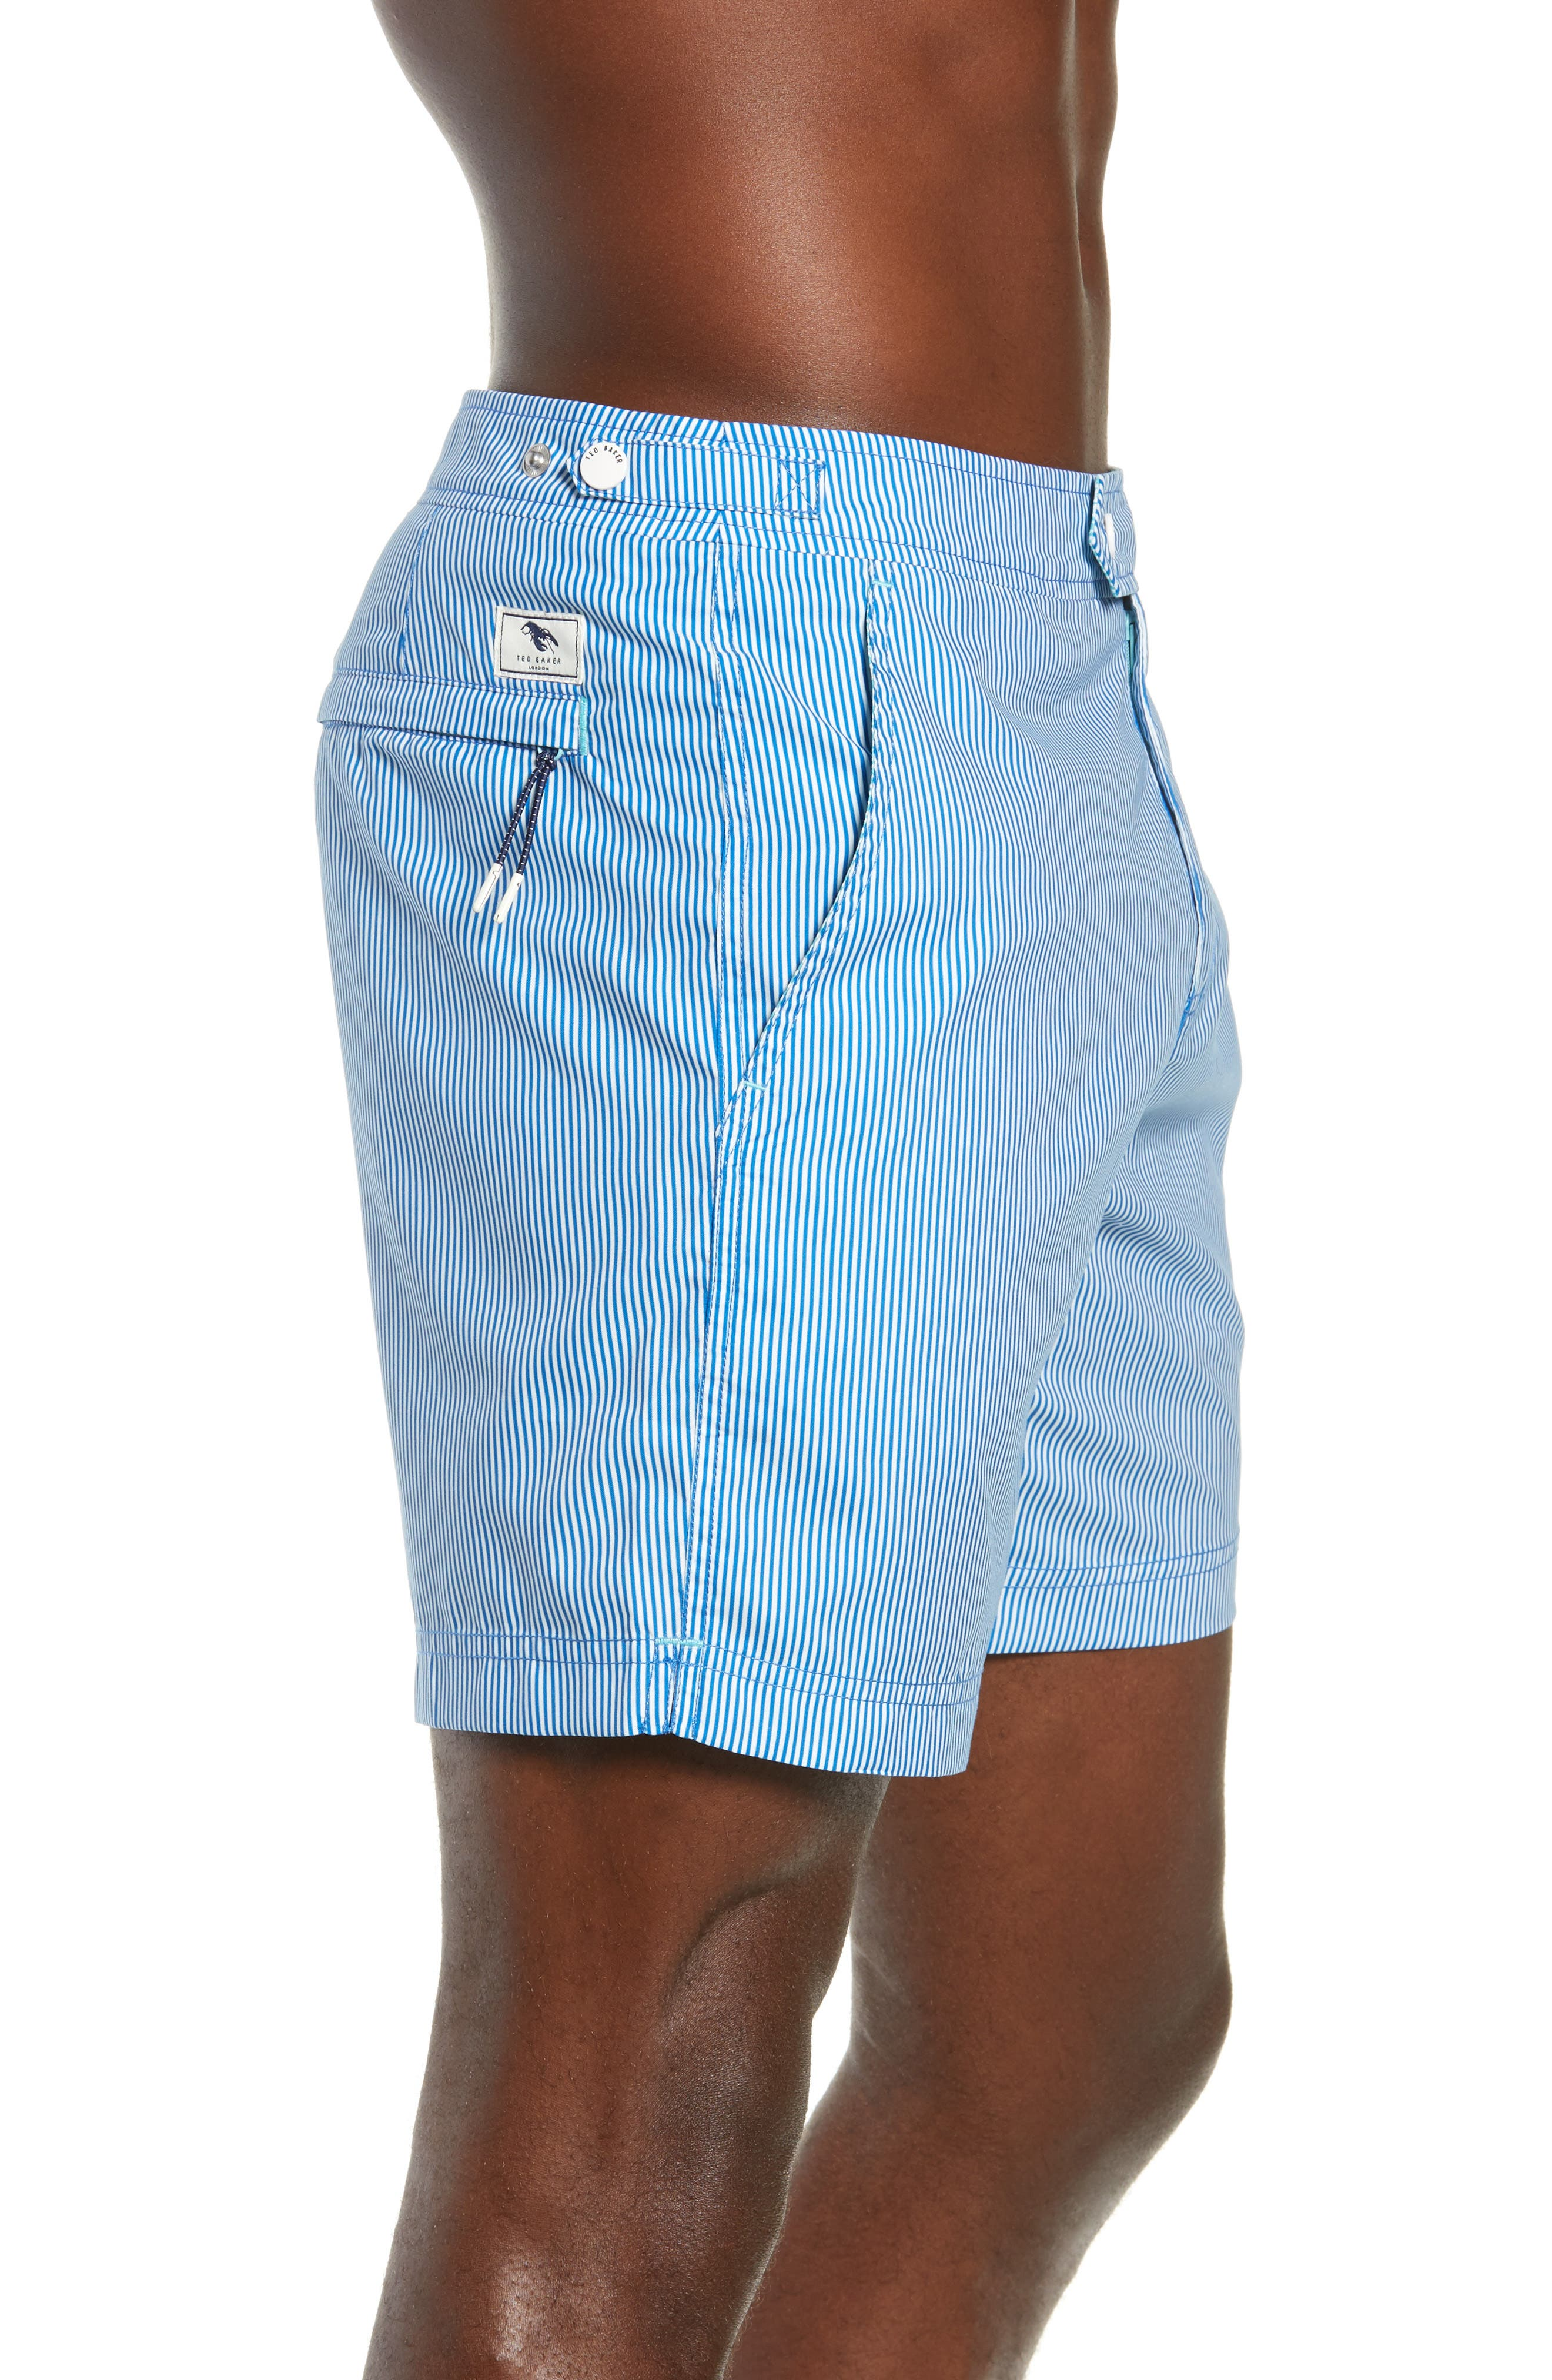 TED BAKER LONDON, Seel Stripe Swim Trunks, Alternate thumbnail 4, color, BLUE